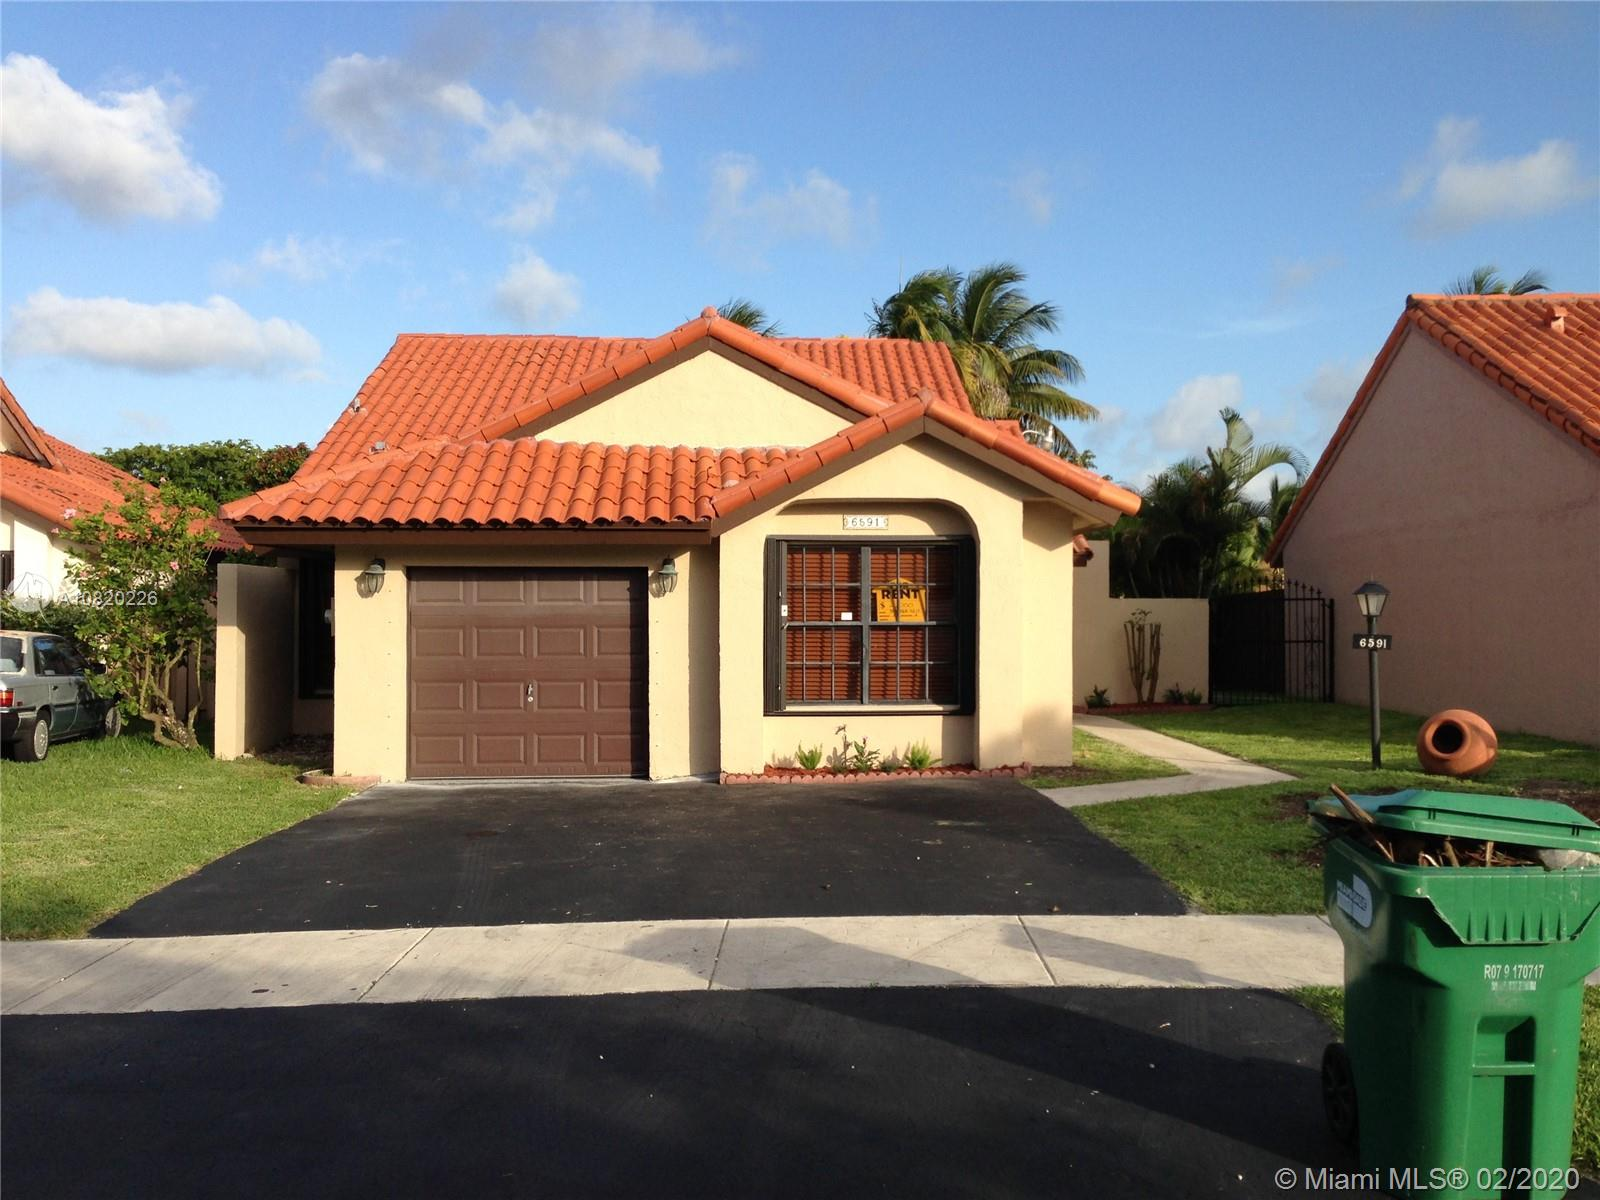 3/2  Nice lake front home in Sunset Harbor community.   Comfortable layout in a great area. Tenant occupied, will move within 30 days of contract.  Showing by appointment only.